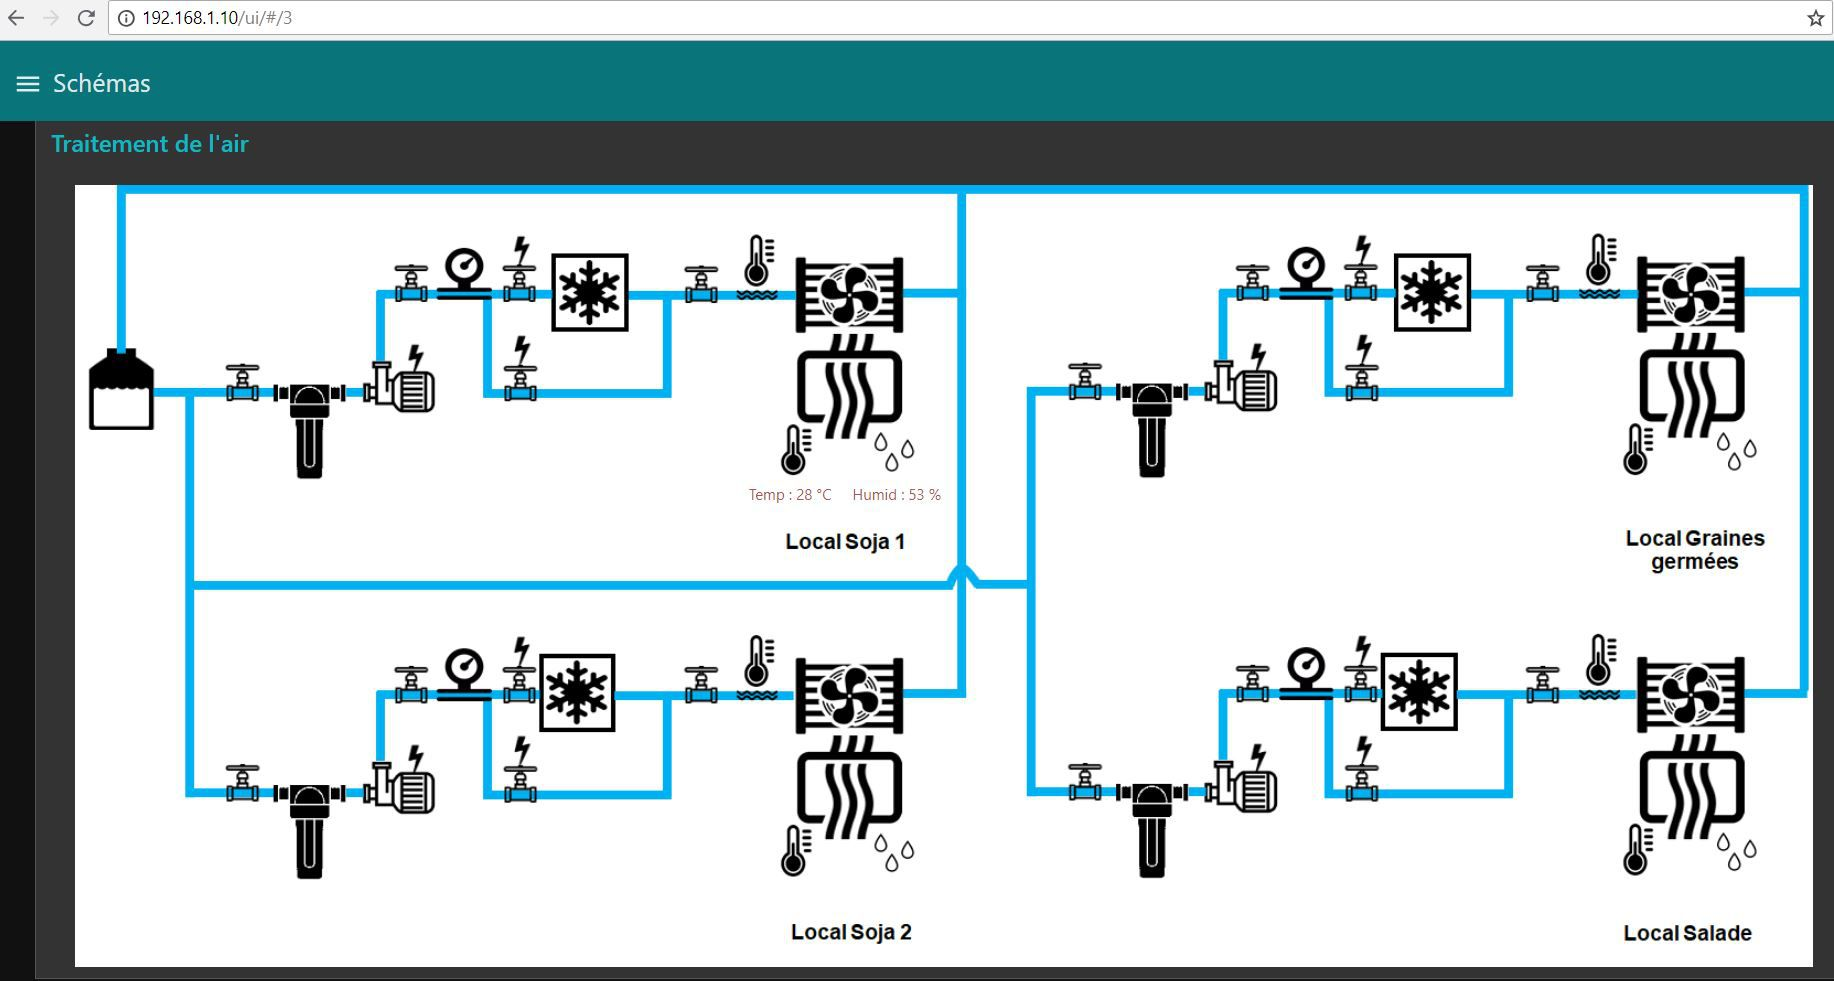 Air Treatment diagram with Arduino PLC